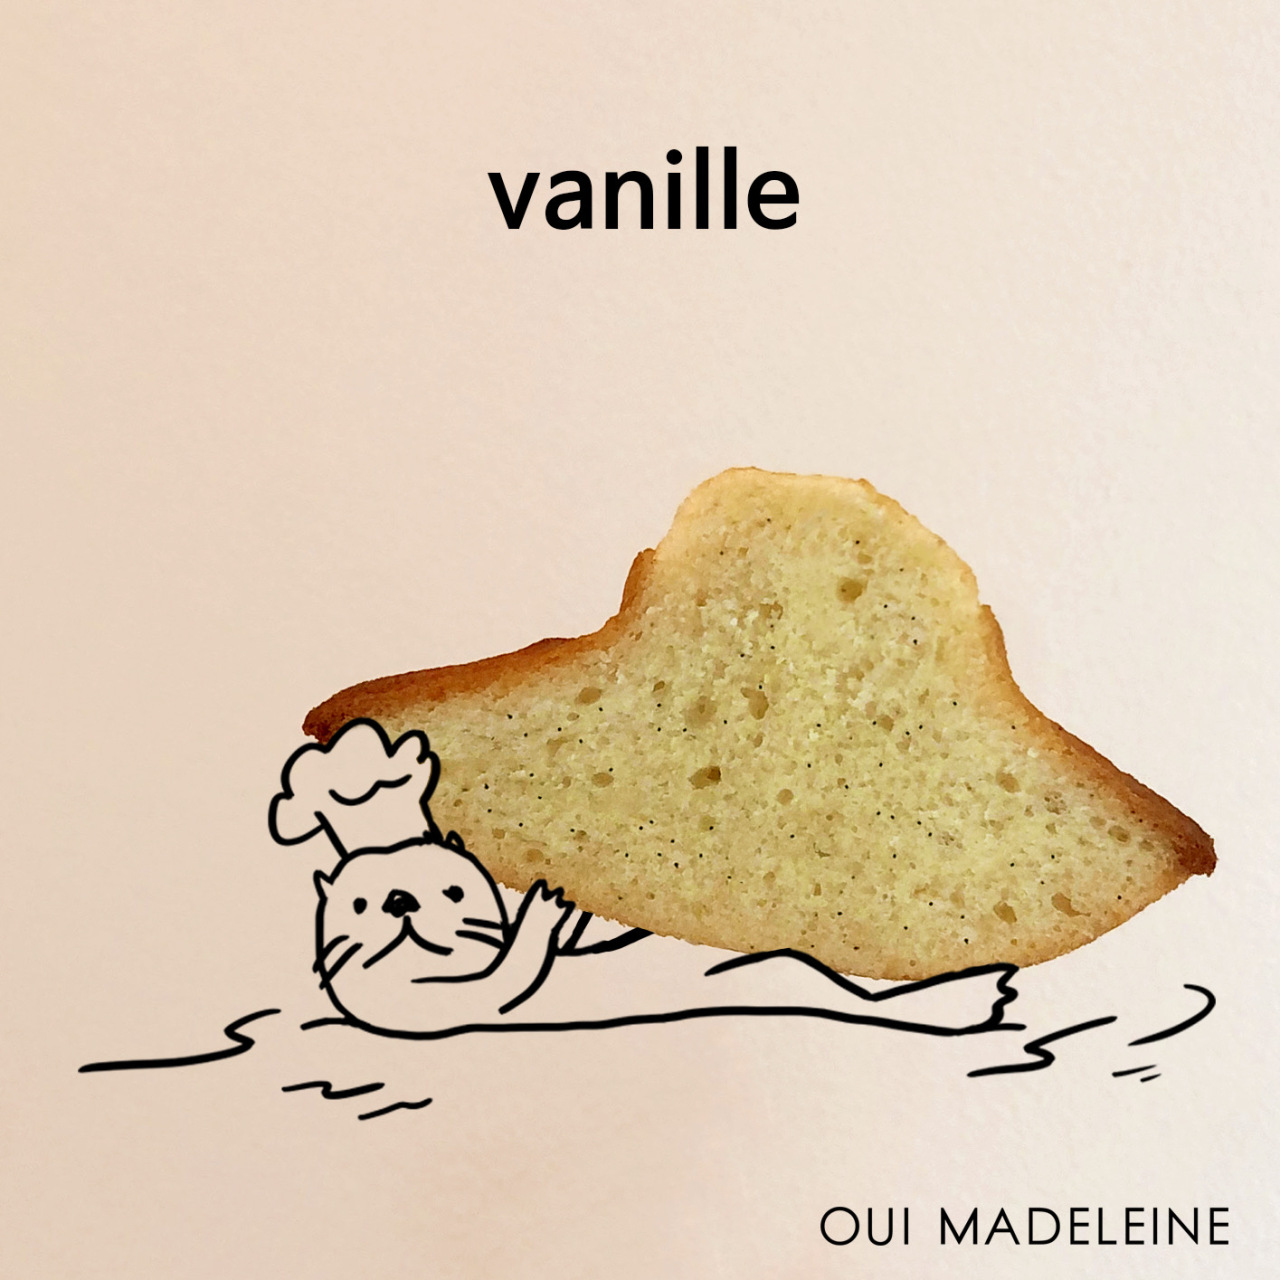 Oui Madeleine's vanilla madeleine is incredibly bouffant, giving away with a slight bounce under the pressure of one's teeth (oui__madeleine)